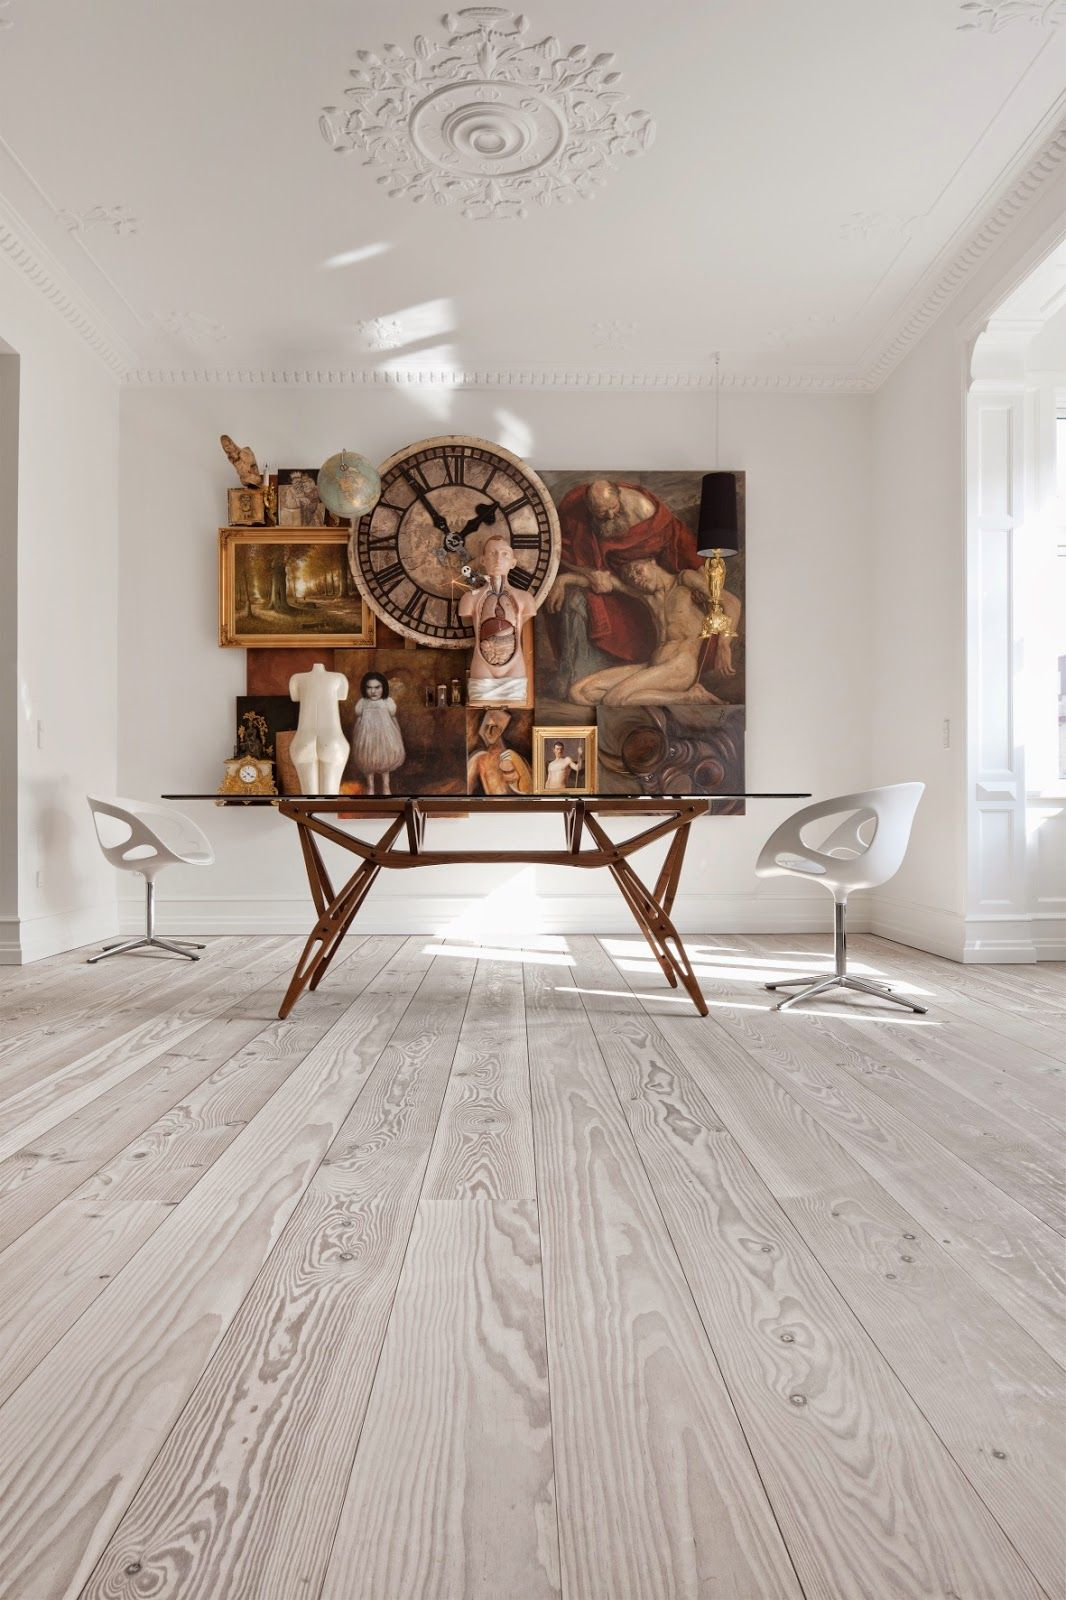 painted wood plank floors - Google Search | Cream City Brick Ideas ...